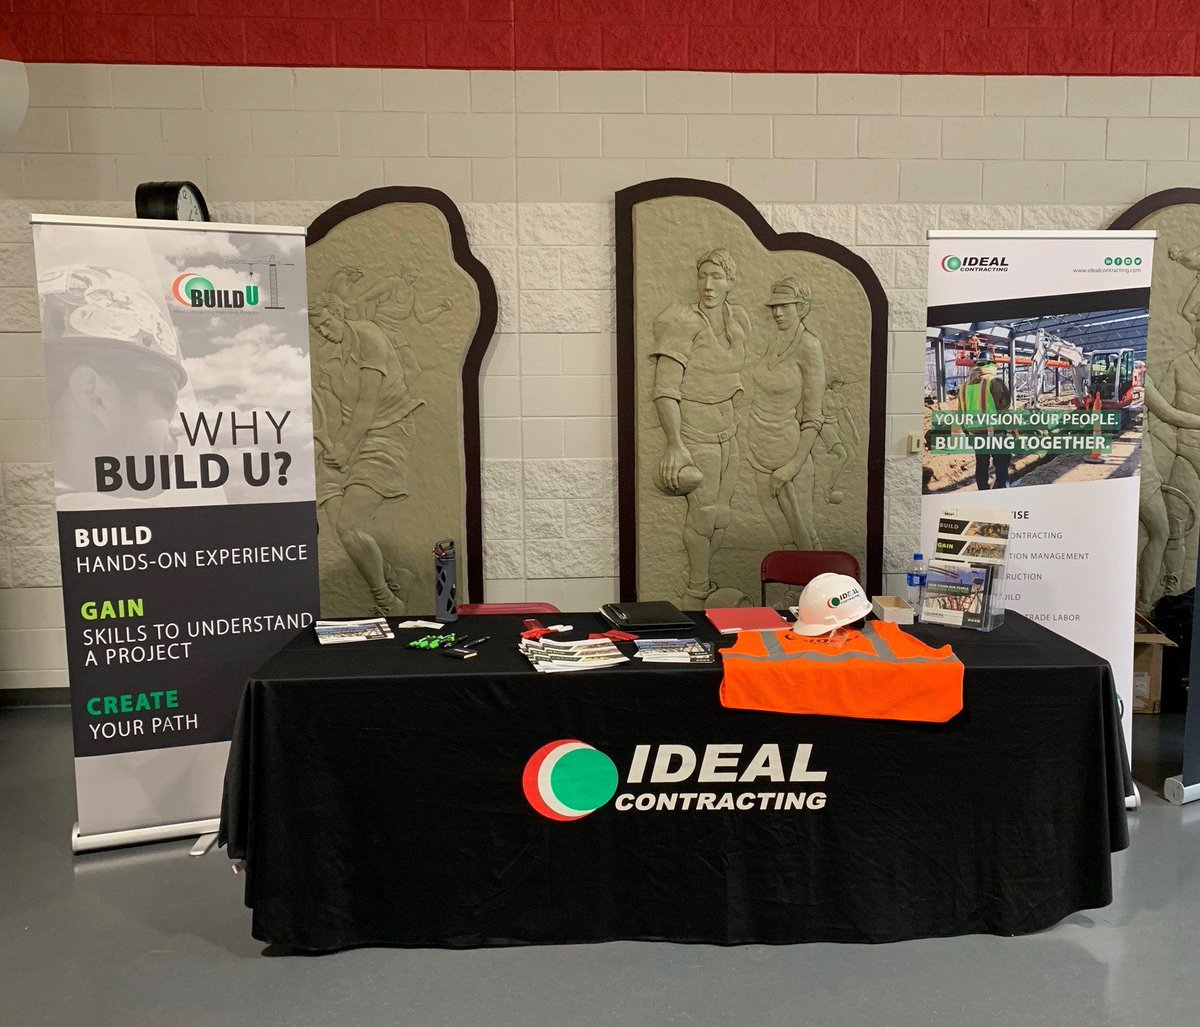 test Twitter Media - Attention Ferris State students: don't forget to stop by our booth at the Ewigleben Athletic Complex. We look forward to seeing you there! #FerrisState #CareerFair #IdealContracting https://t.co/urKdpaZC3v